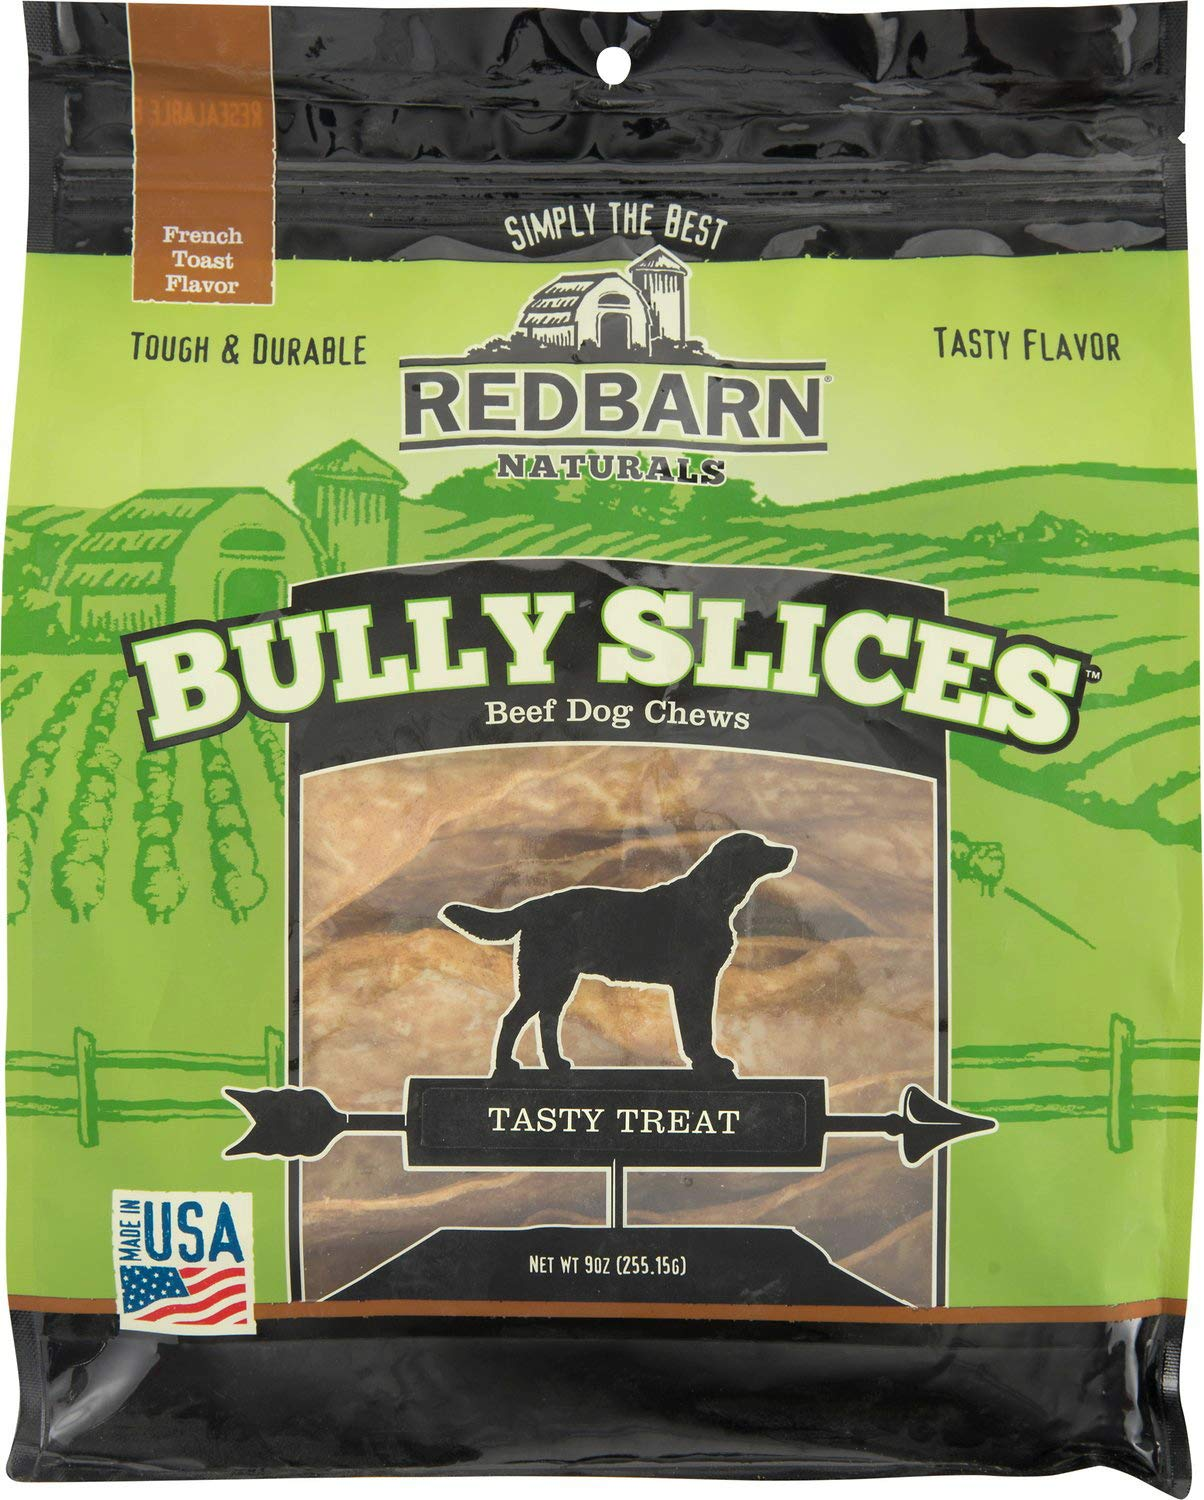 Red Barn Naturals Bully Slices Beef Dog Chews, French Toast, 9 Ounce, 6 Pack